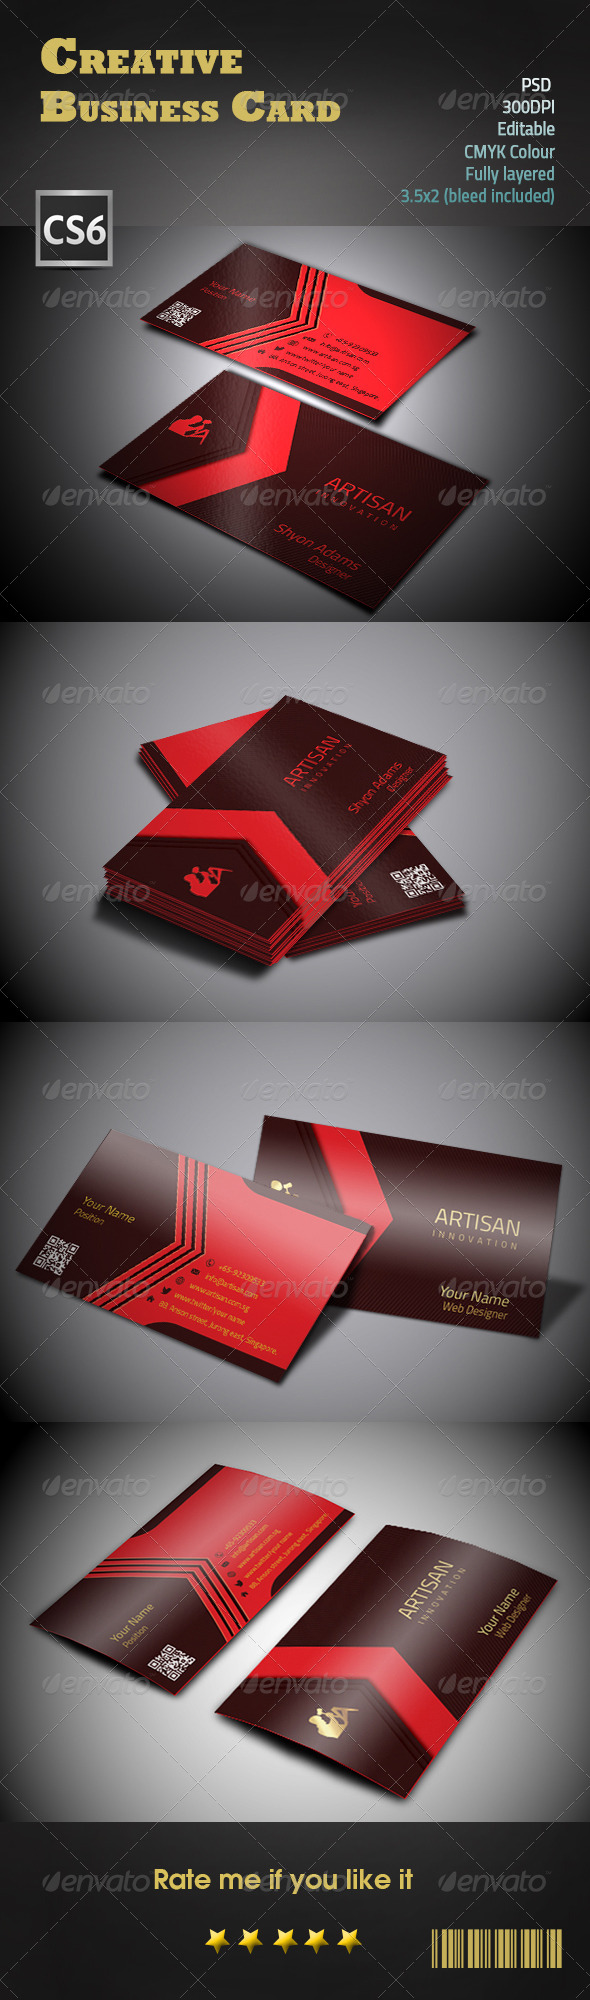 GraphicRiver Creative Business Card 8544071